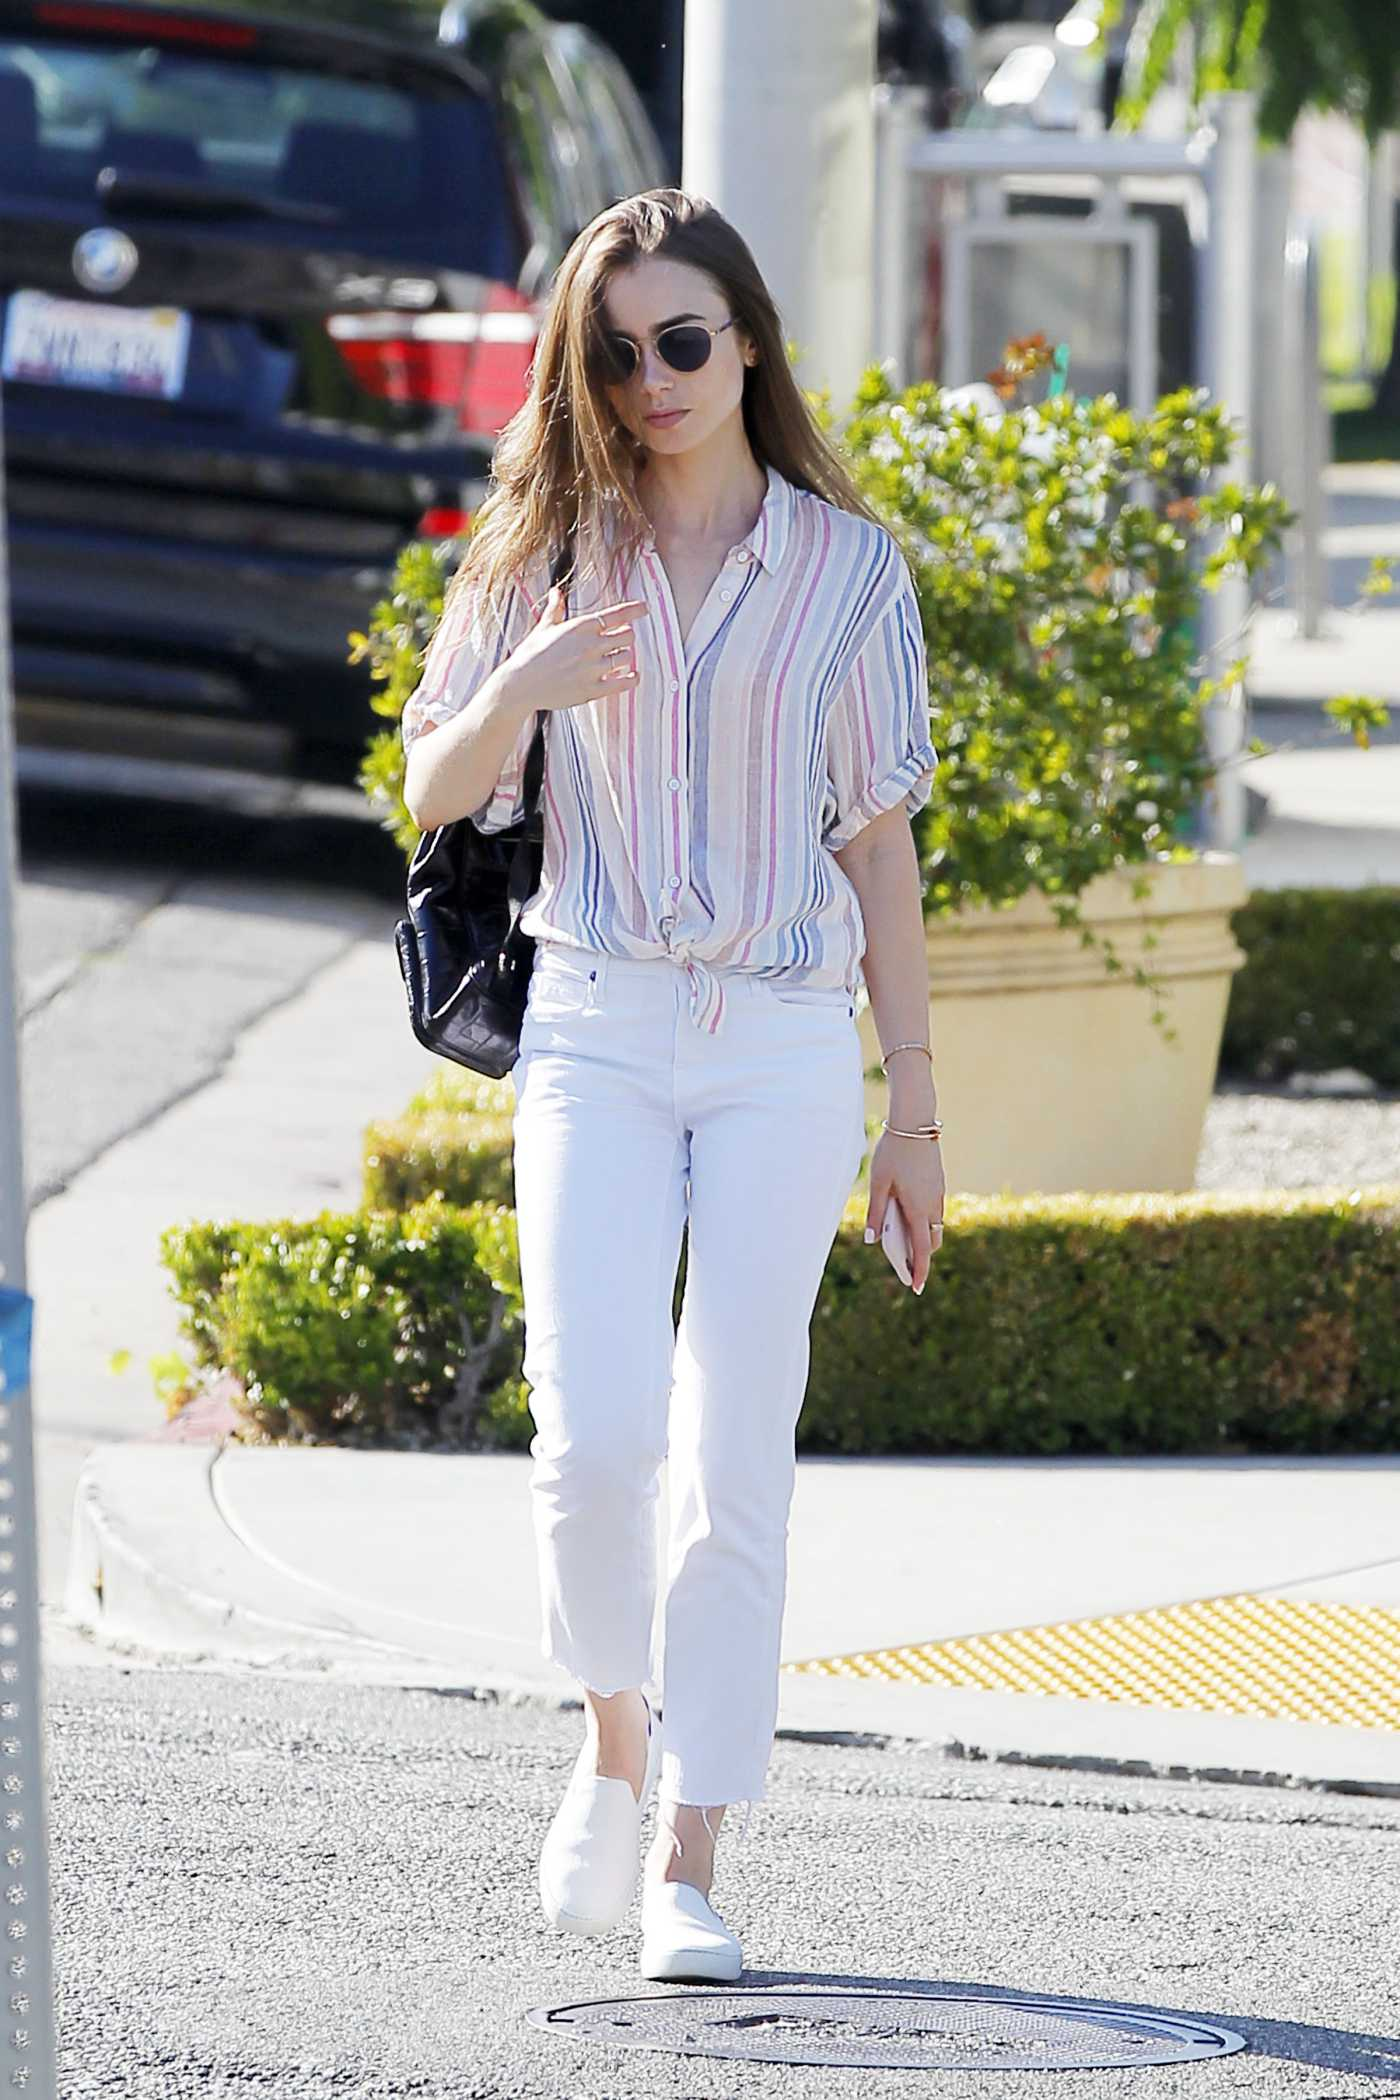 Lily Collins in a Striped Shirt Was Seen Out in Beverly Hills 07/17/2019